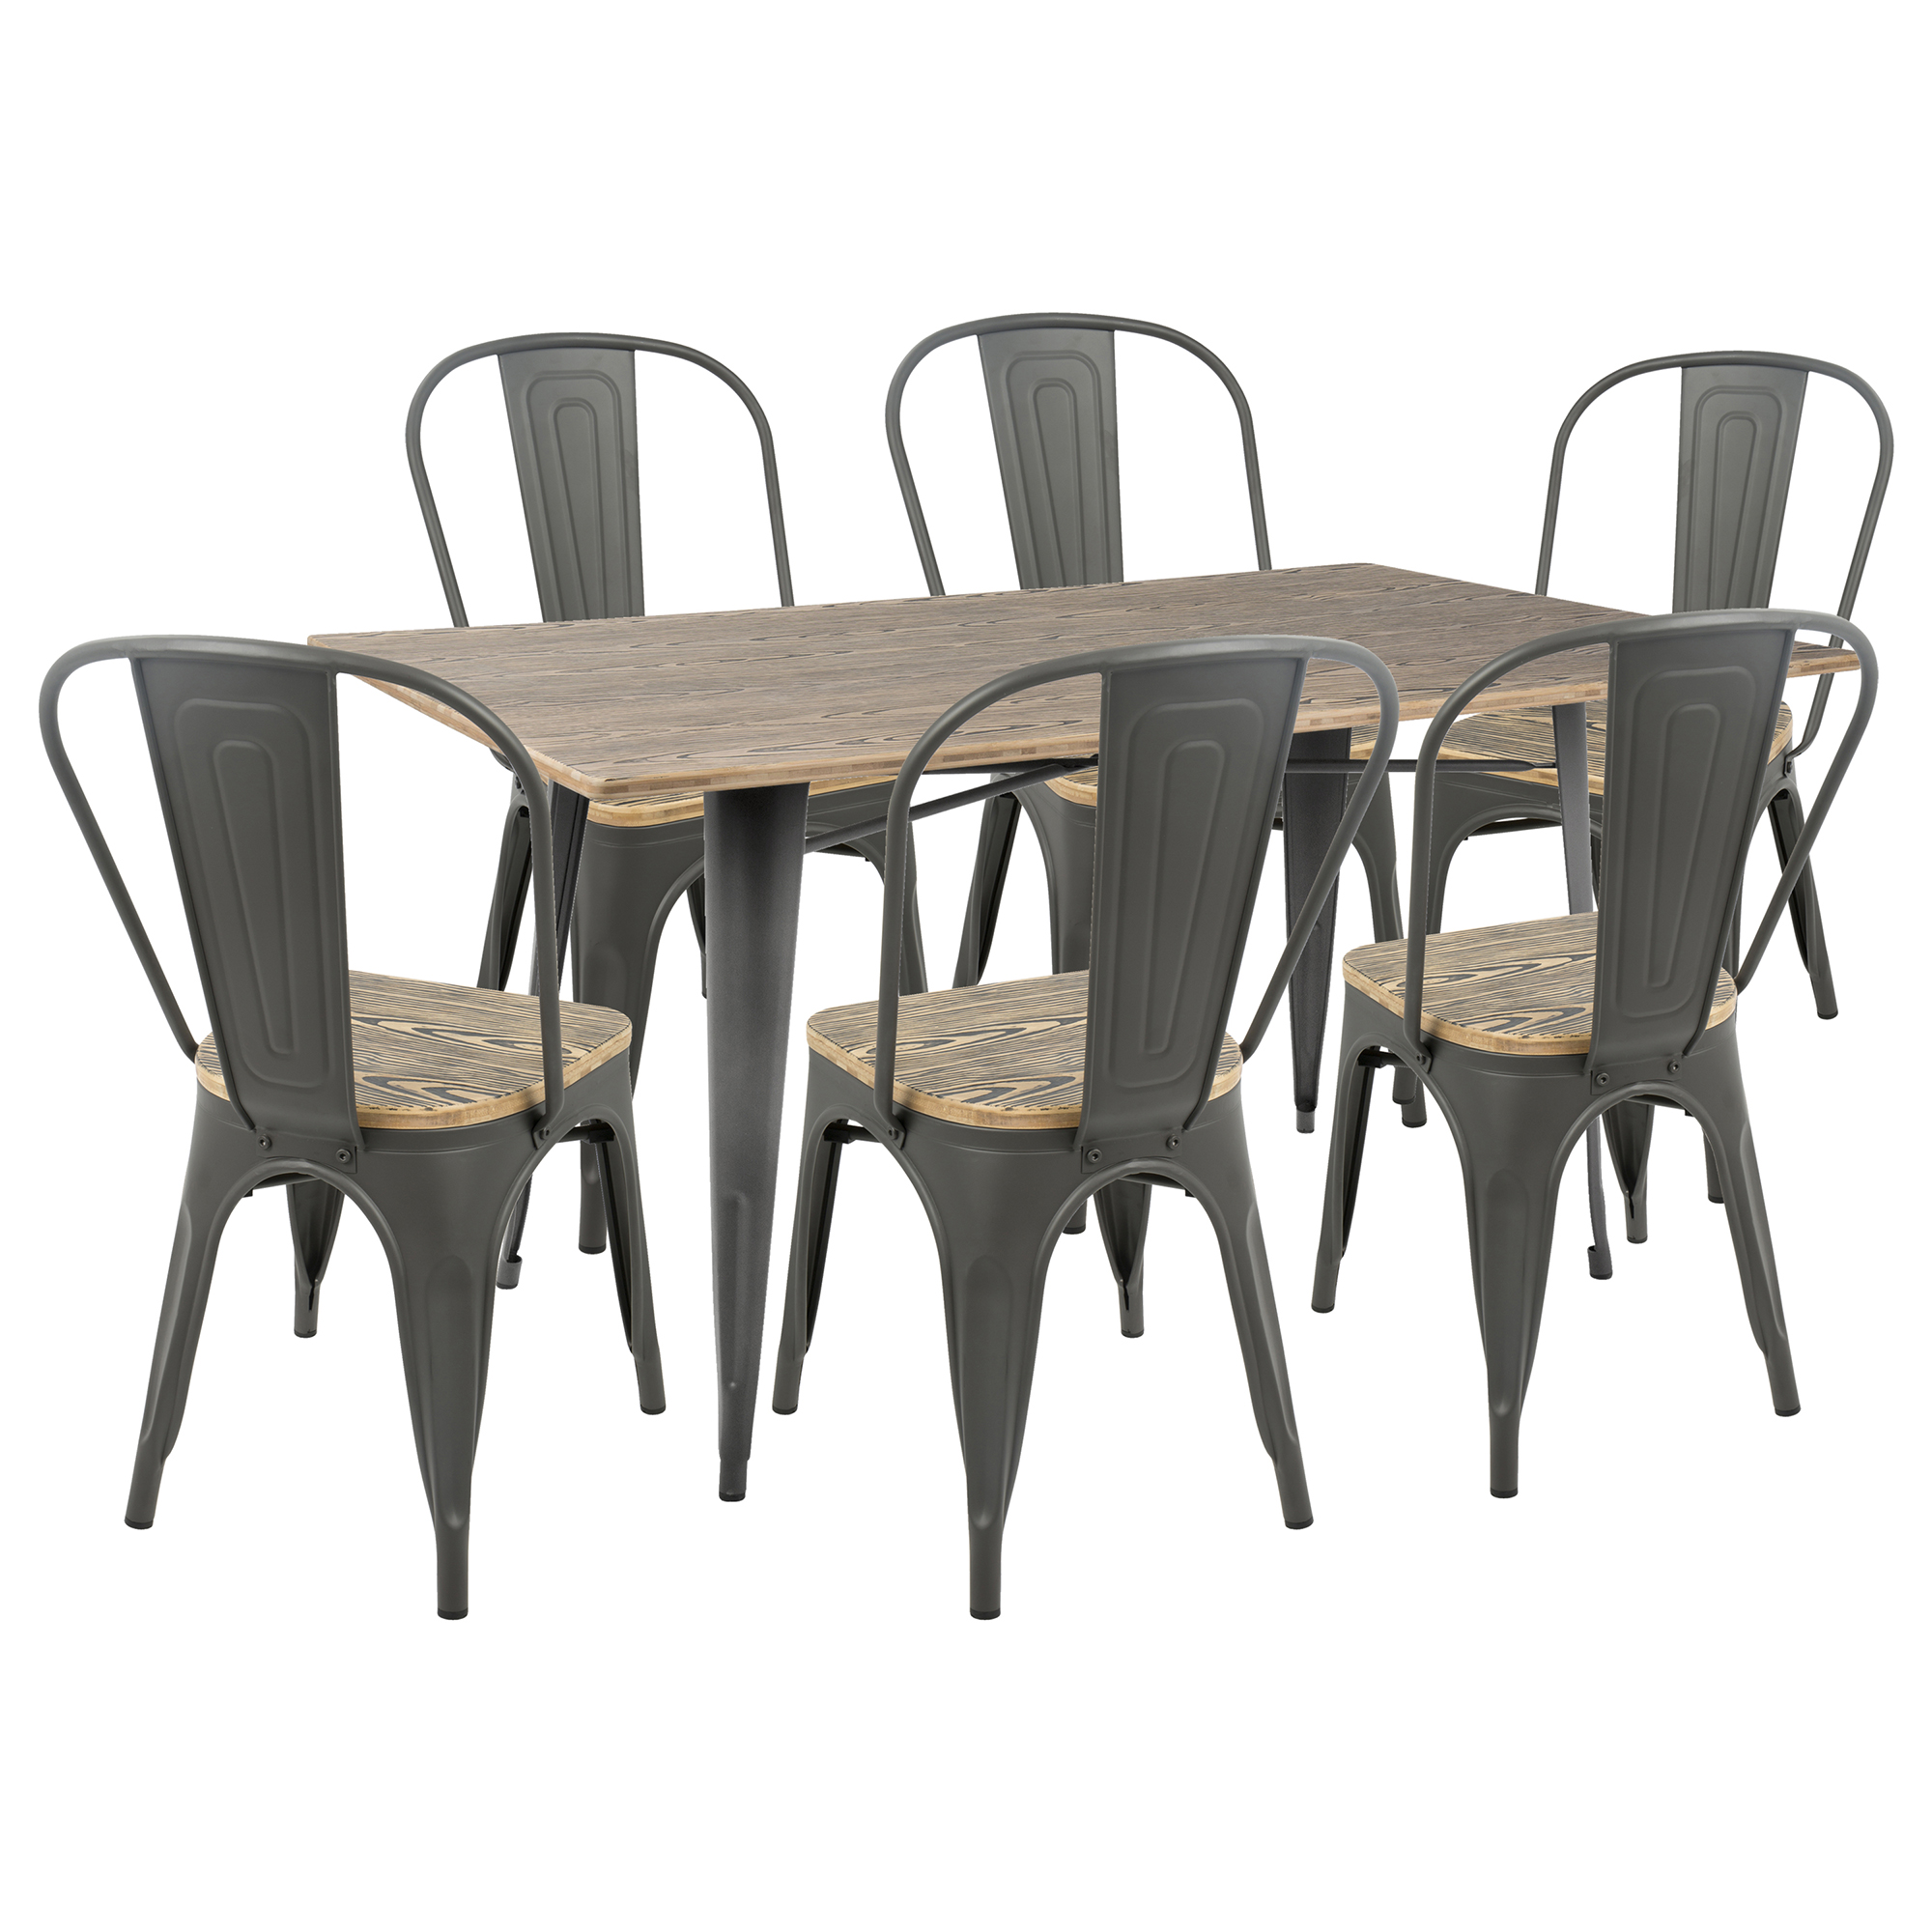 Attirant Oregon 7 Piece Industrial Farmhouse Dining Set In Grey And Brown By  LumiSource